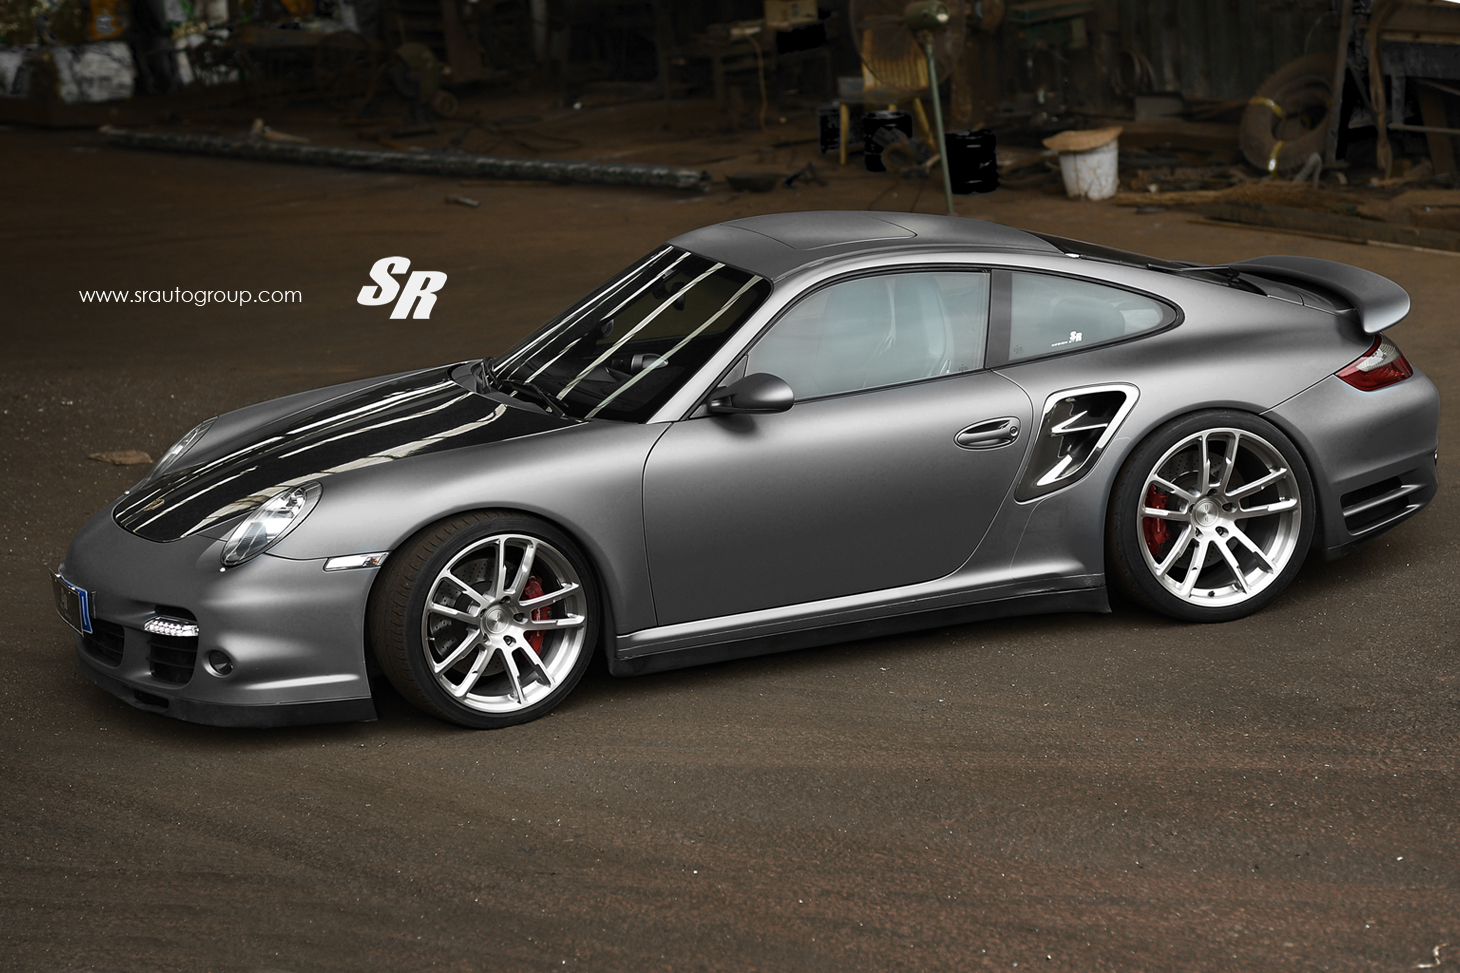 porsche 911 turbo 997 restyled by sr autogroup autoevolution. Black Bedroom Furniture Sets. Home Design Ideas